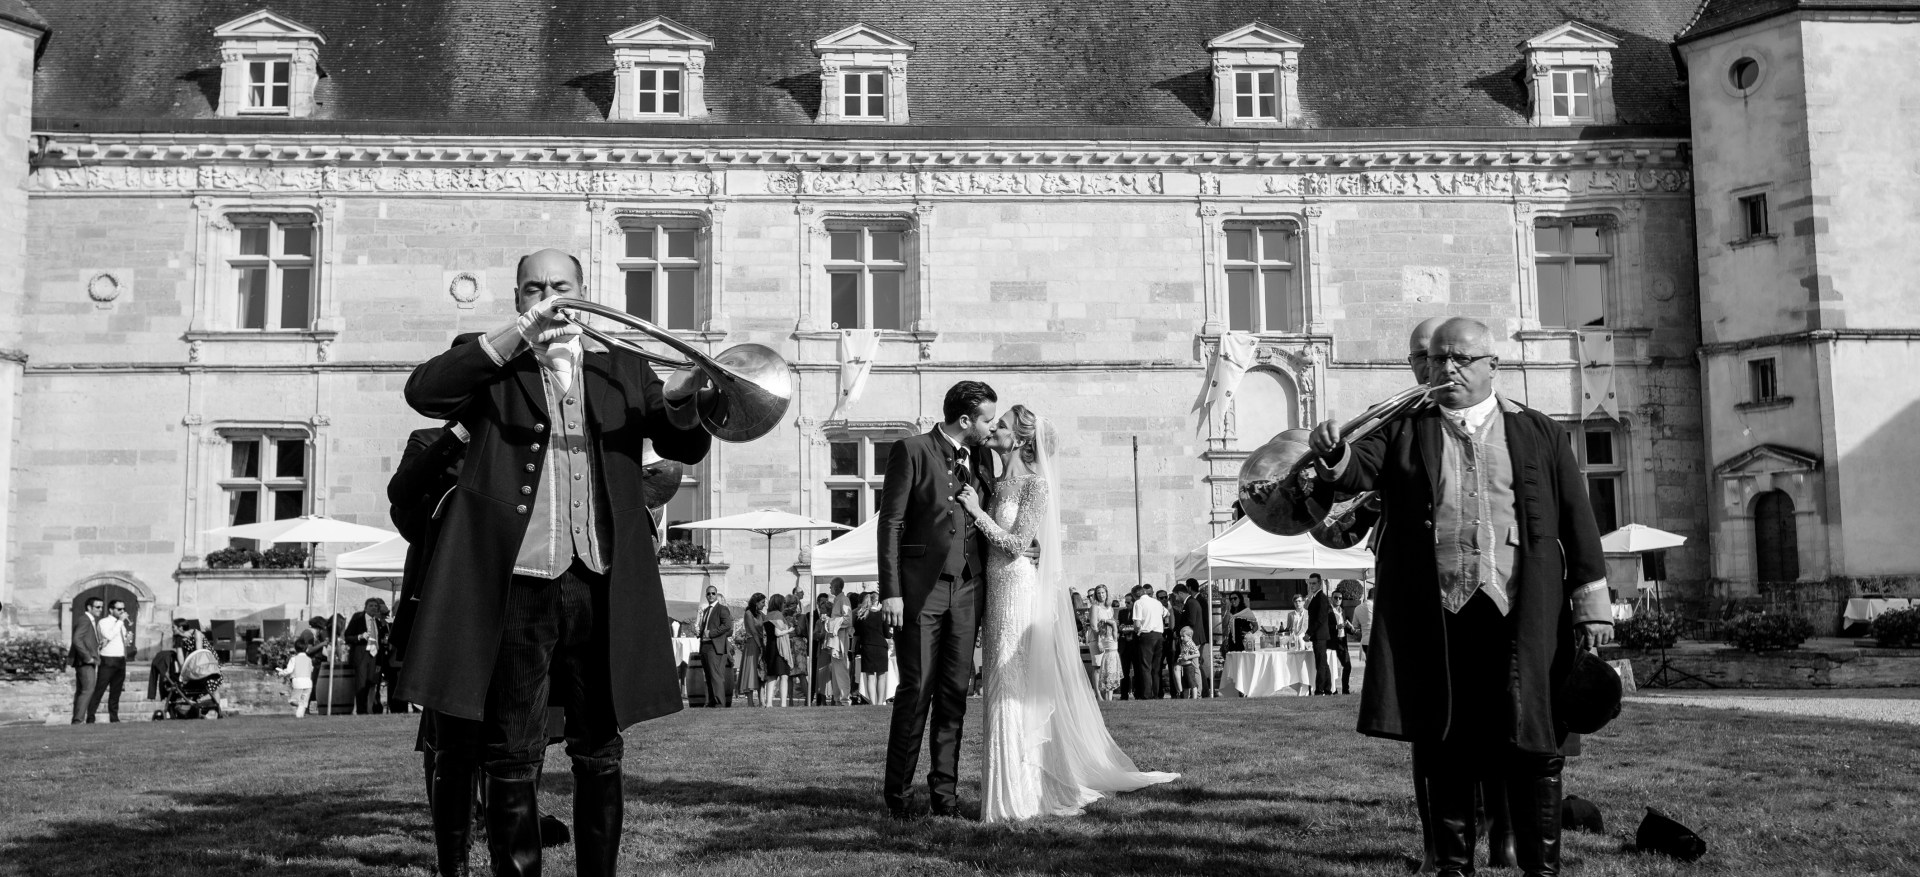 A special wedding in France